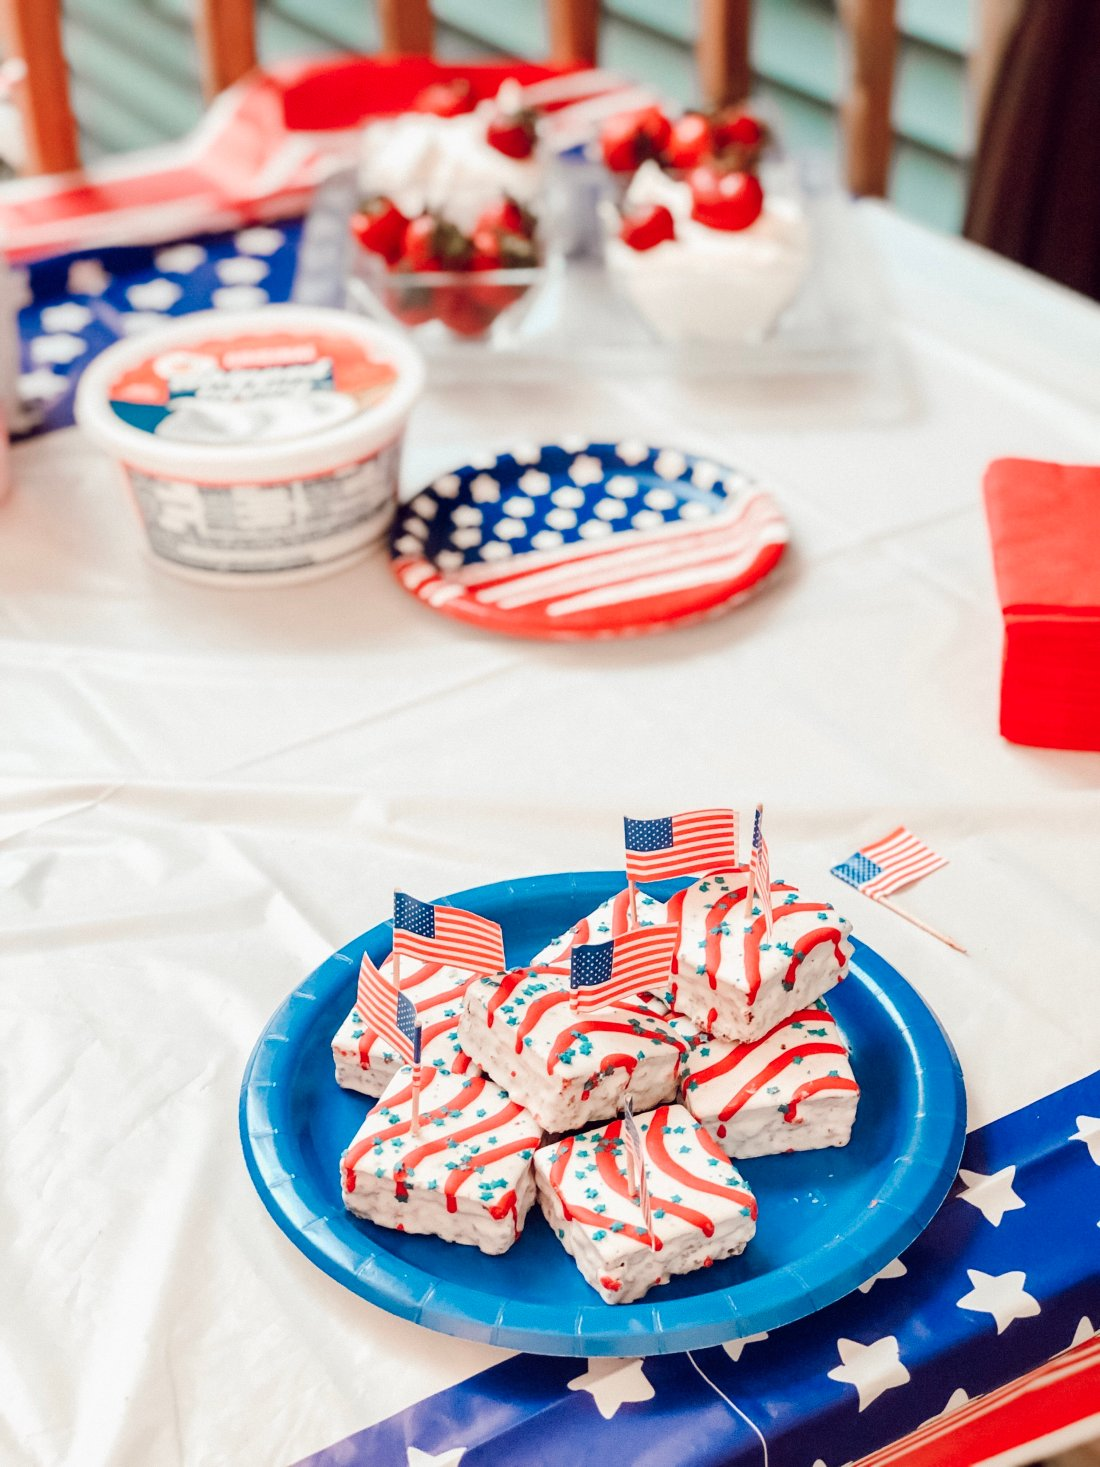 Patriotic snack treats